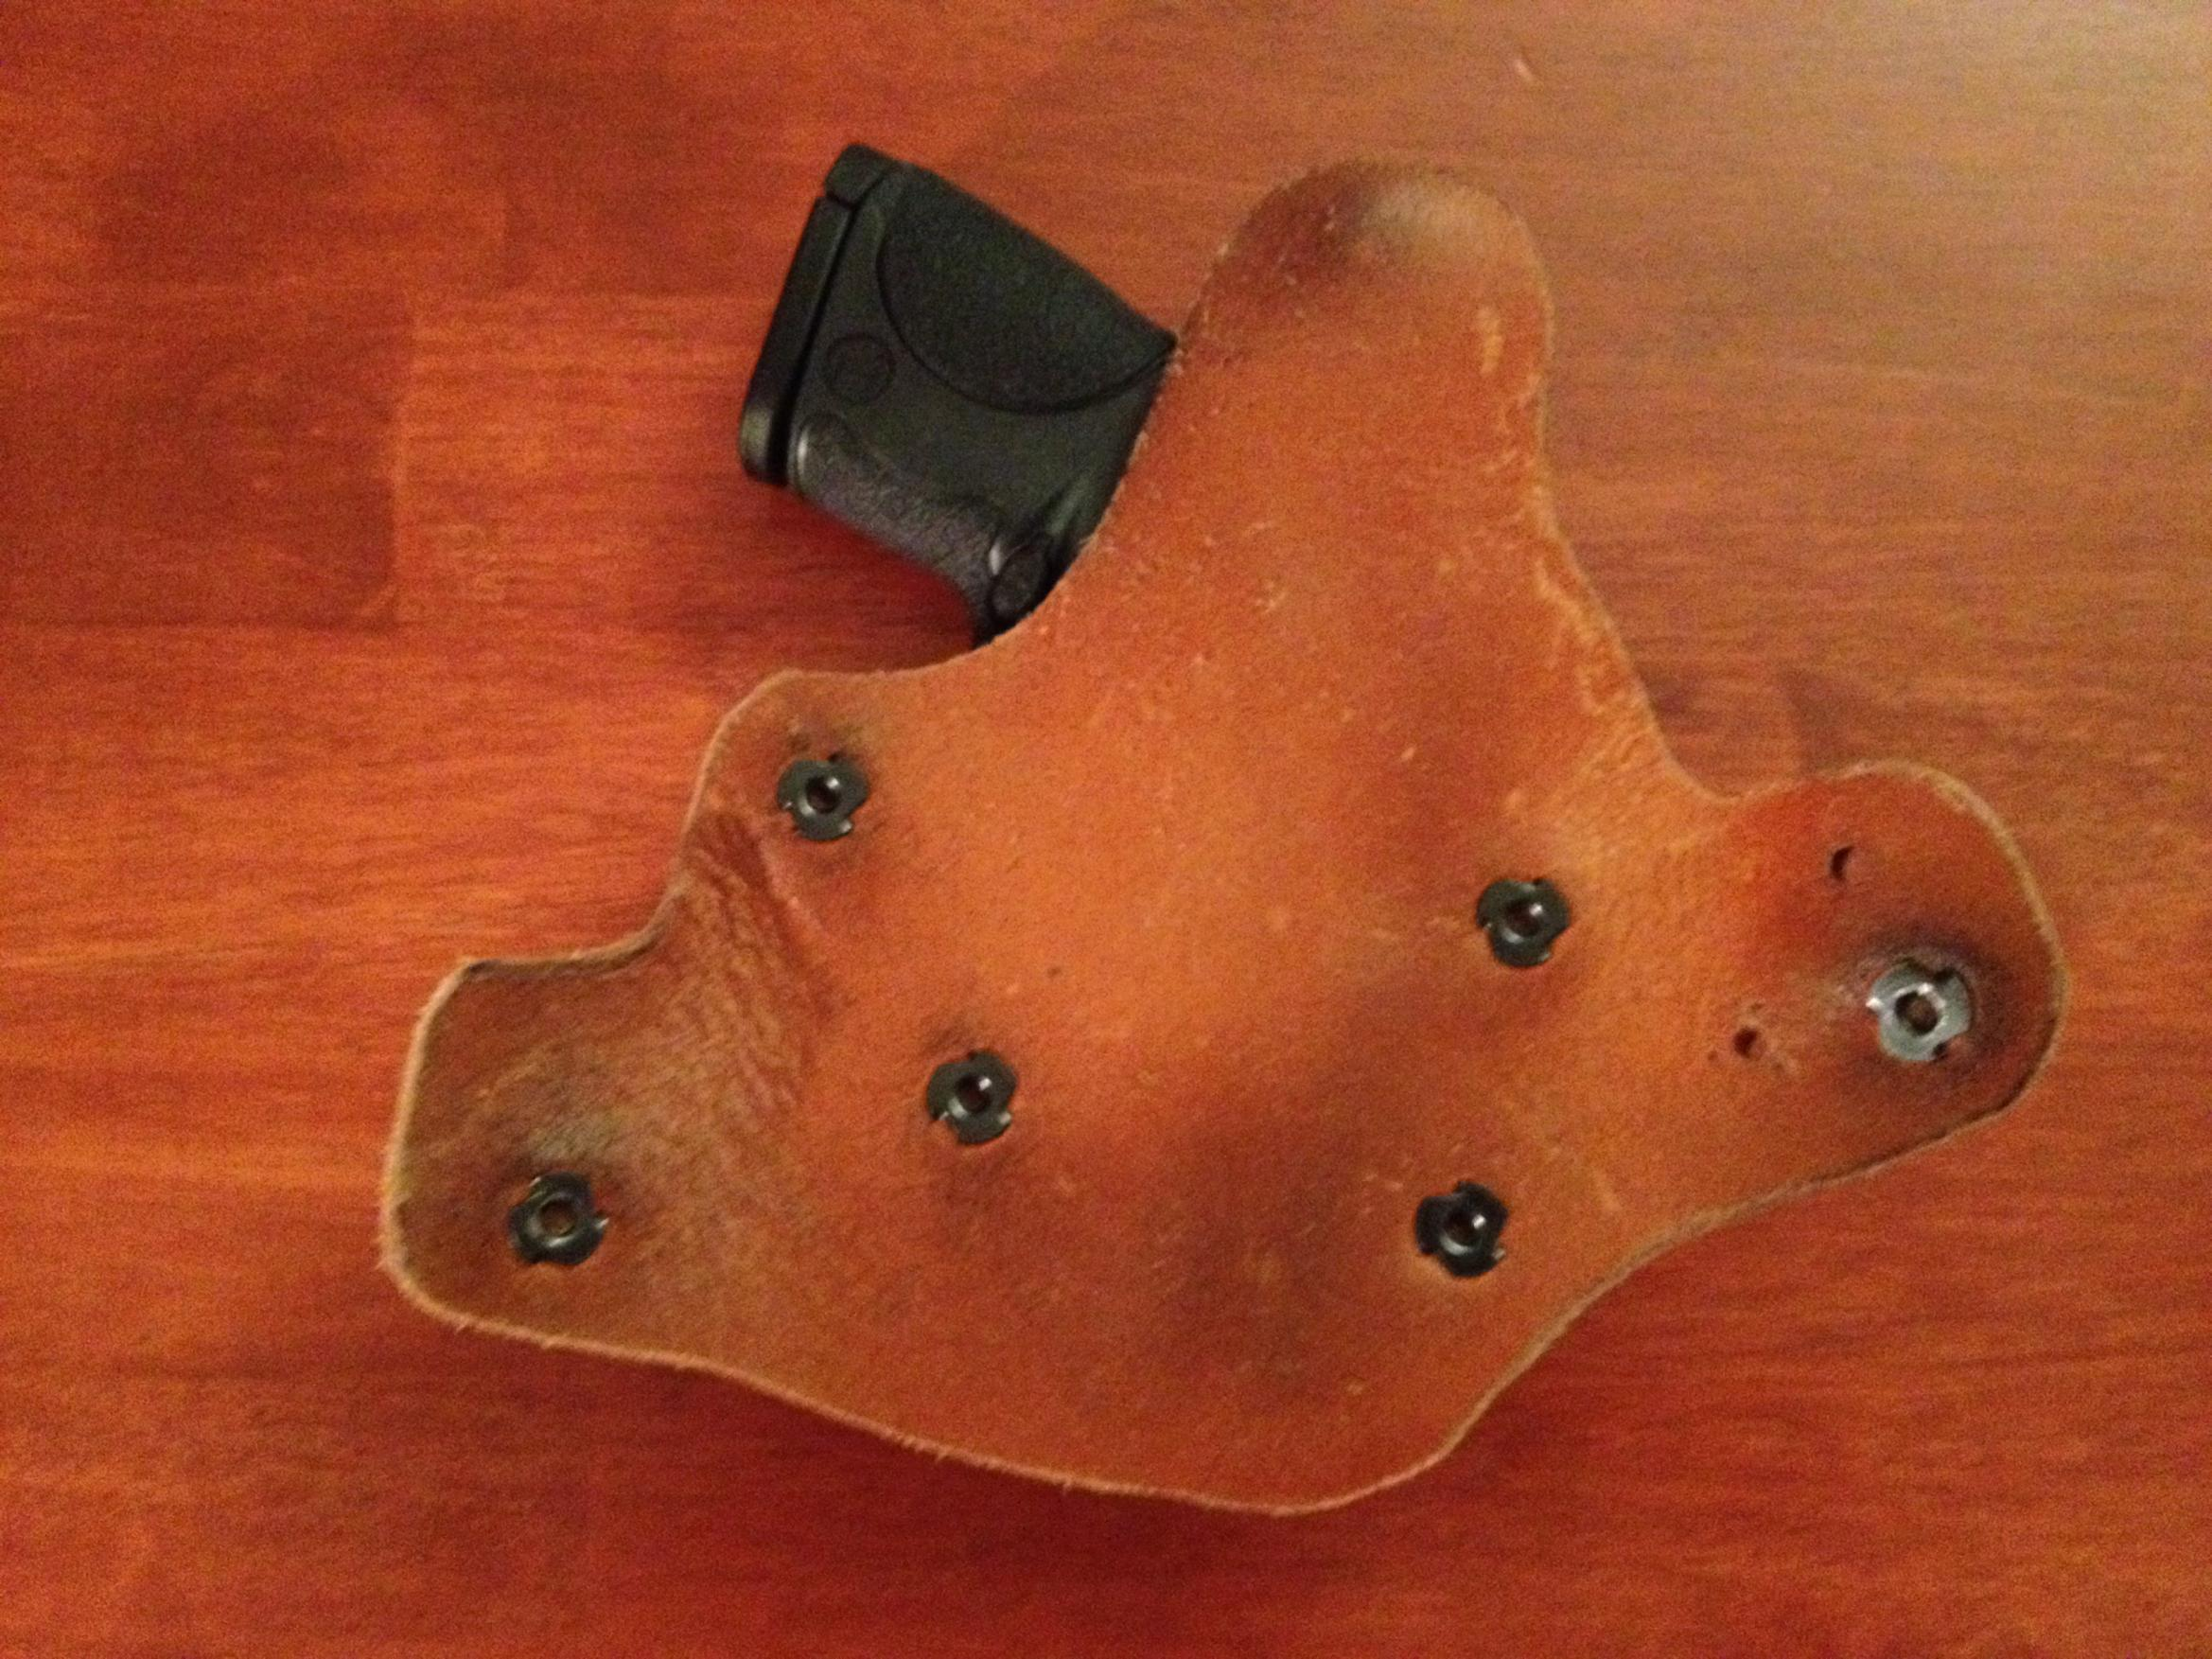 Steathgear USA holster initial impressions.-img_1262.jpg